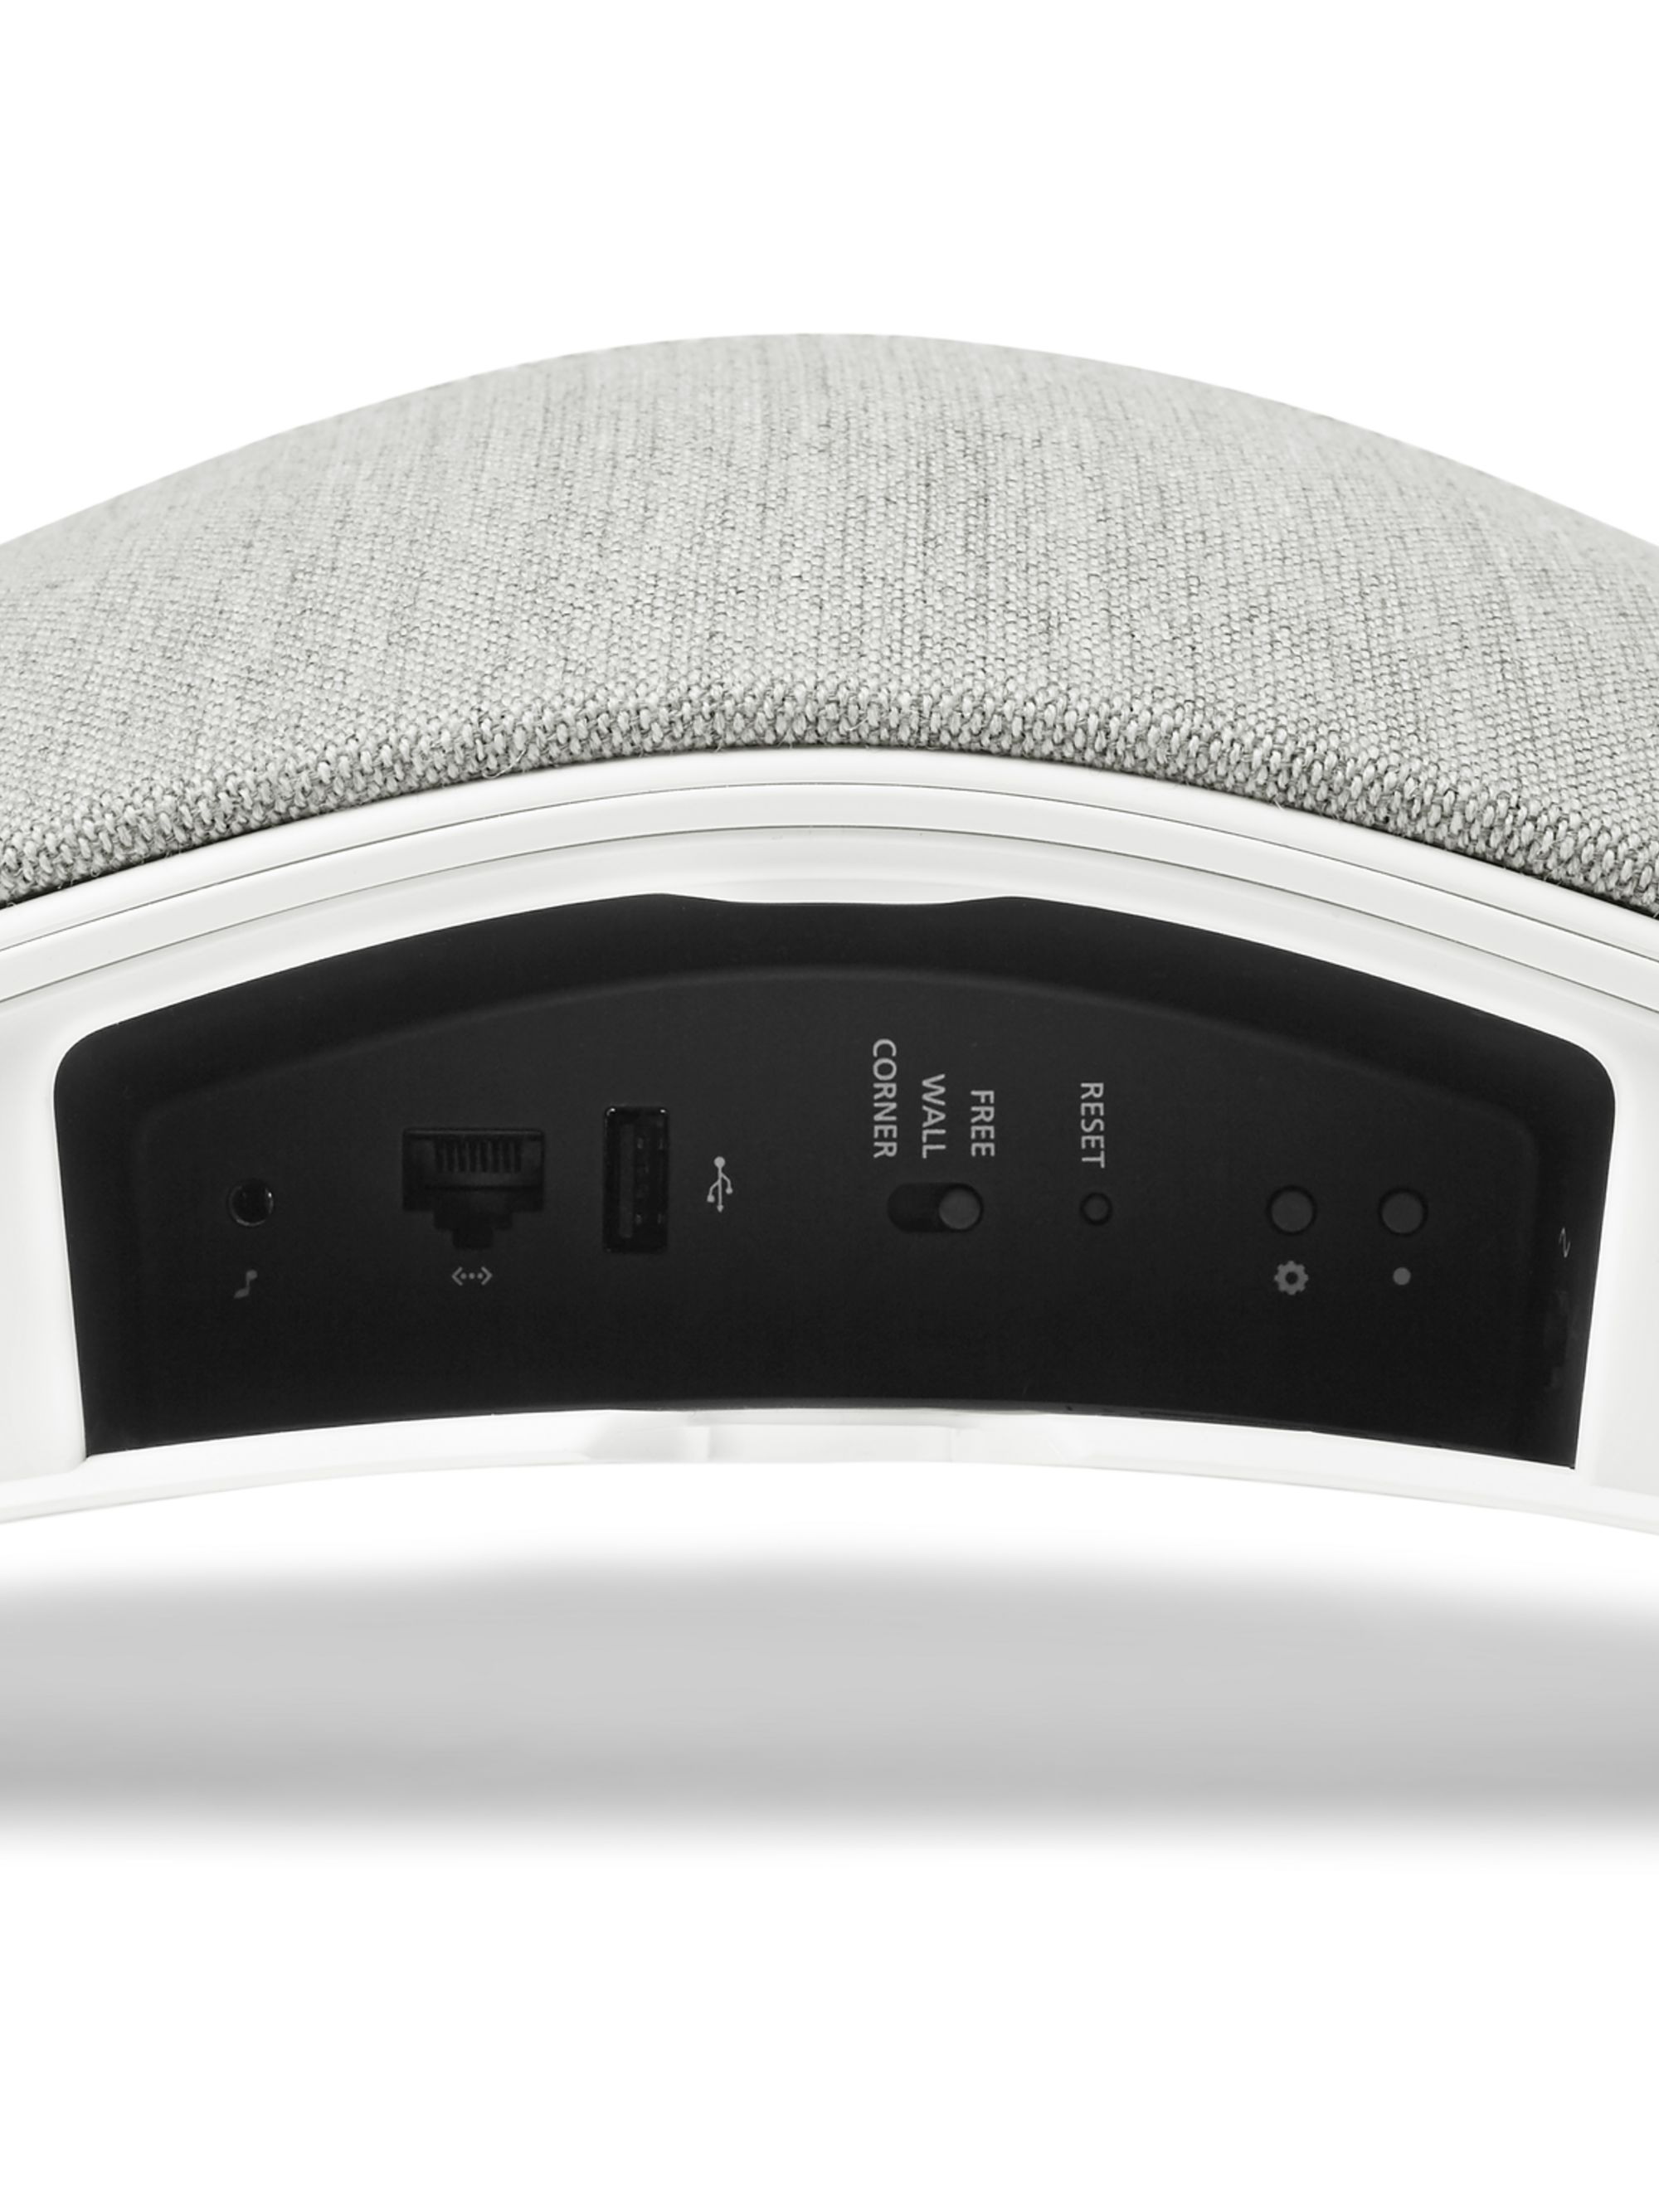 Bang & Olufsen BeoPlay A6 Speaker